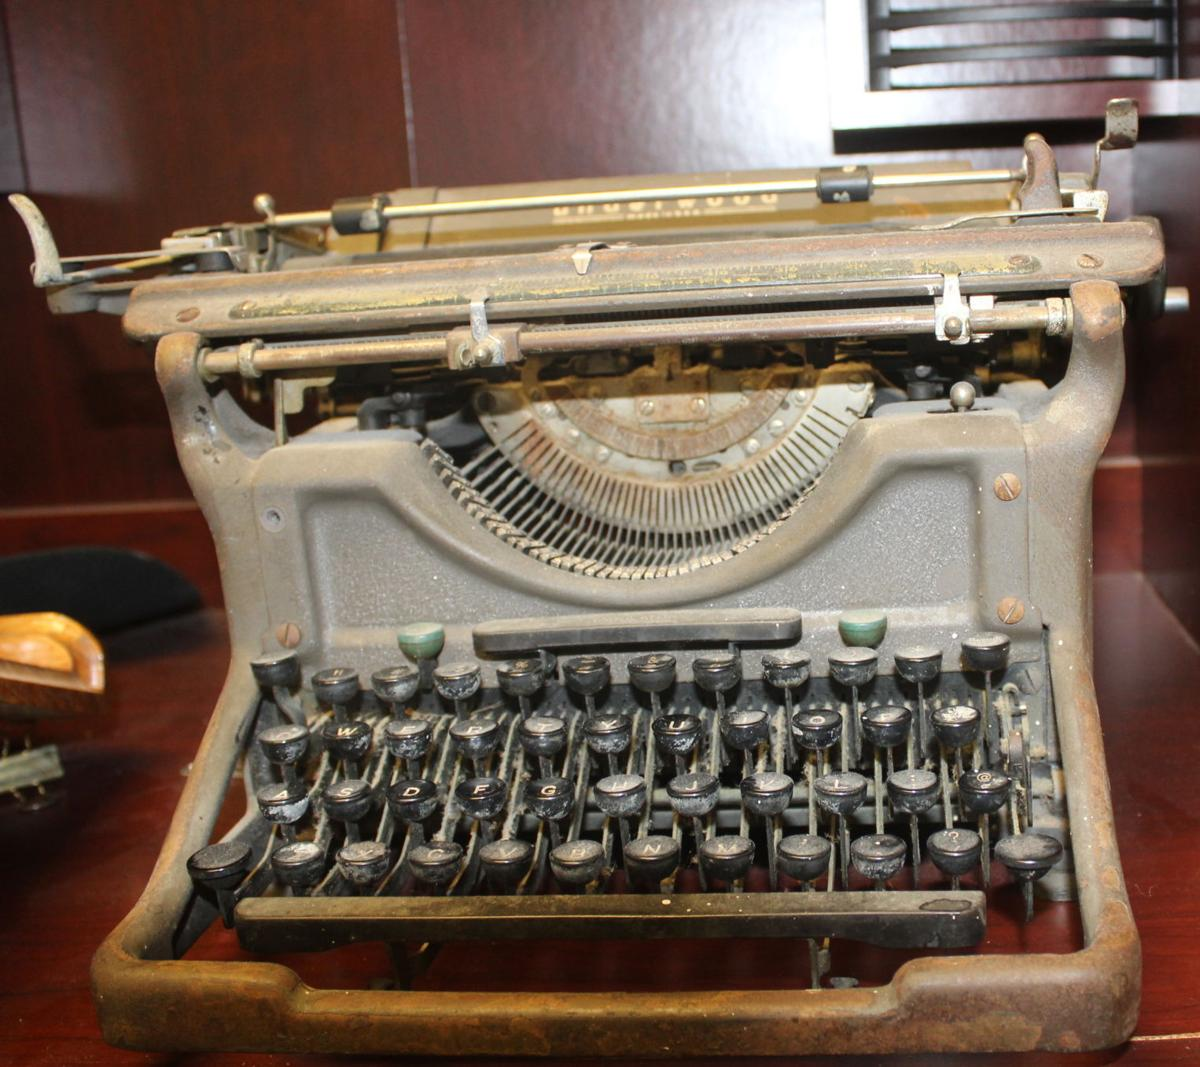 Column: It's time to take the typewriter home